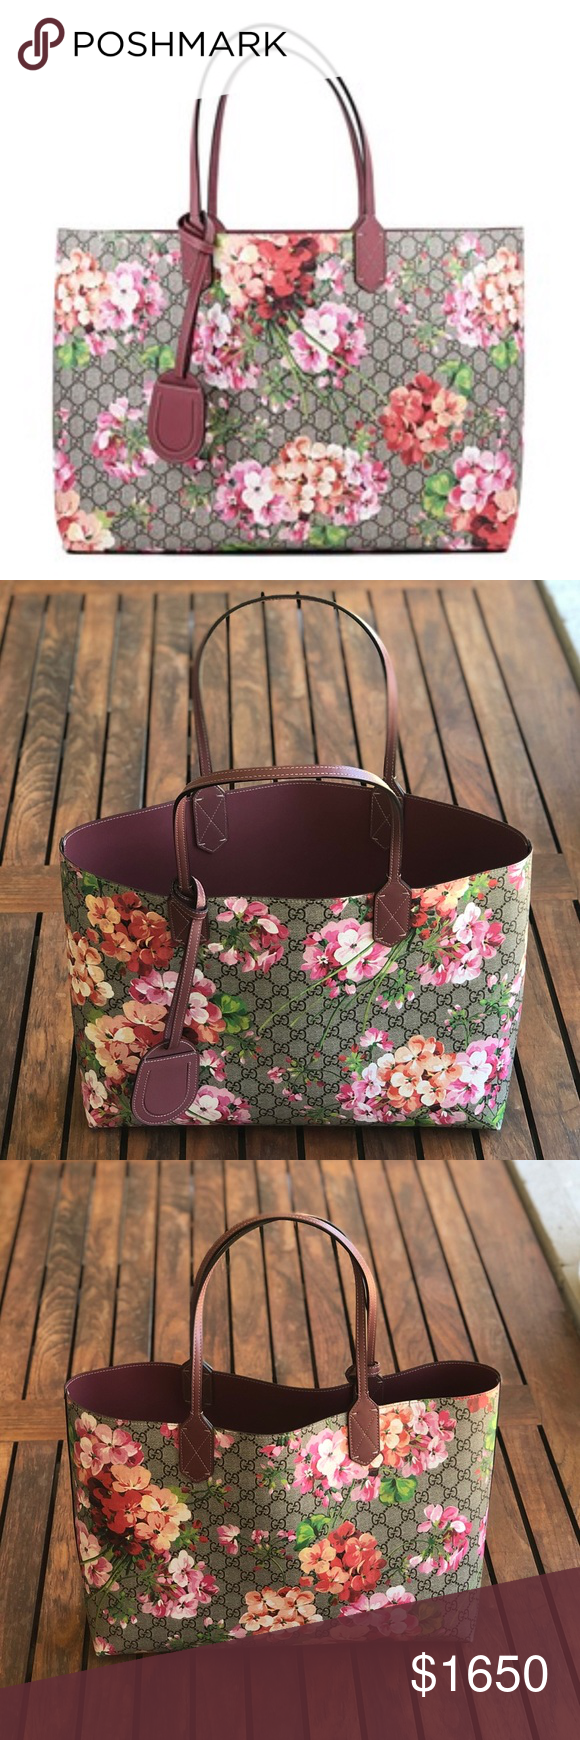 1406677bfb13 GUCCI GG Supreme Monogram Blooms Reversible Tote Authentic GUCCI Textured  Calfskin GG Supreme Monogram Blooms Print